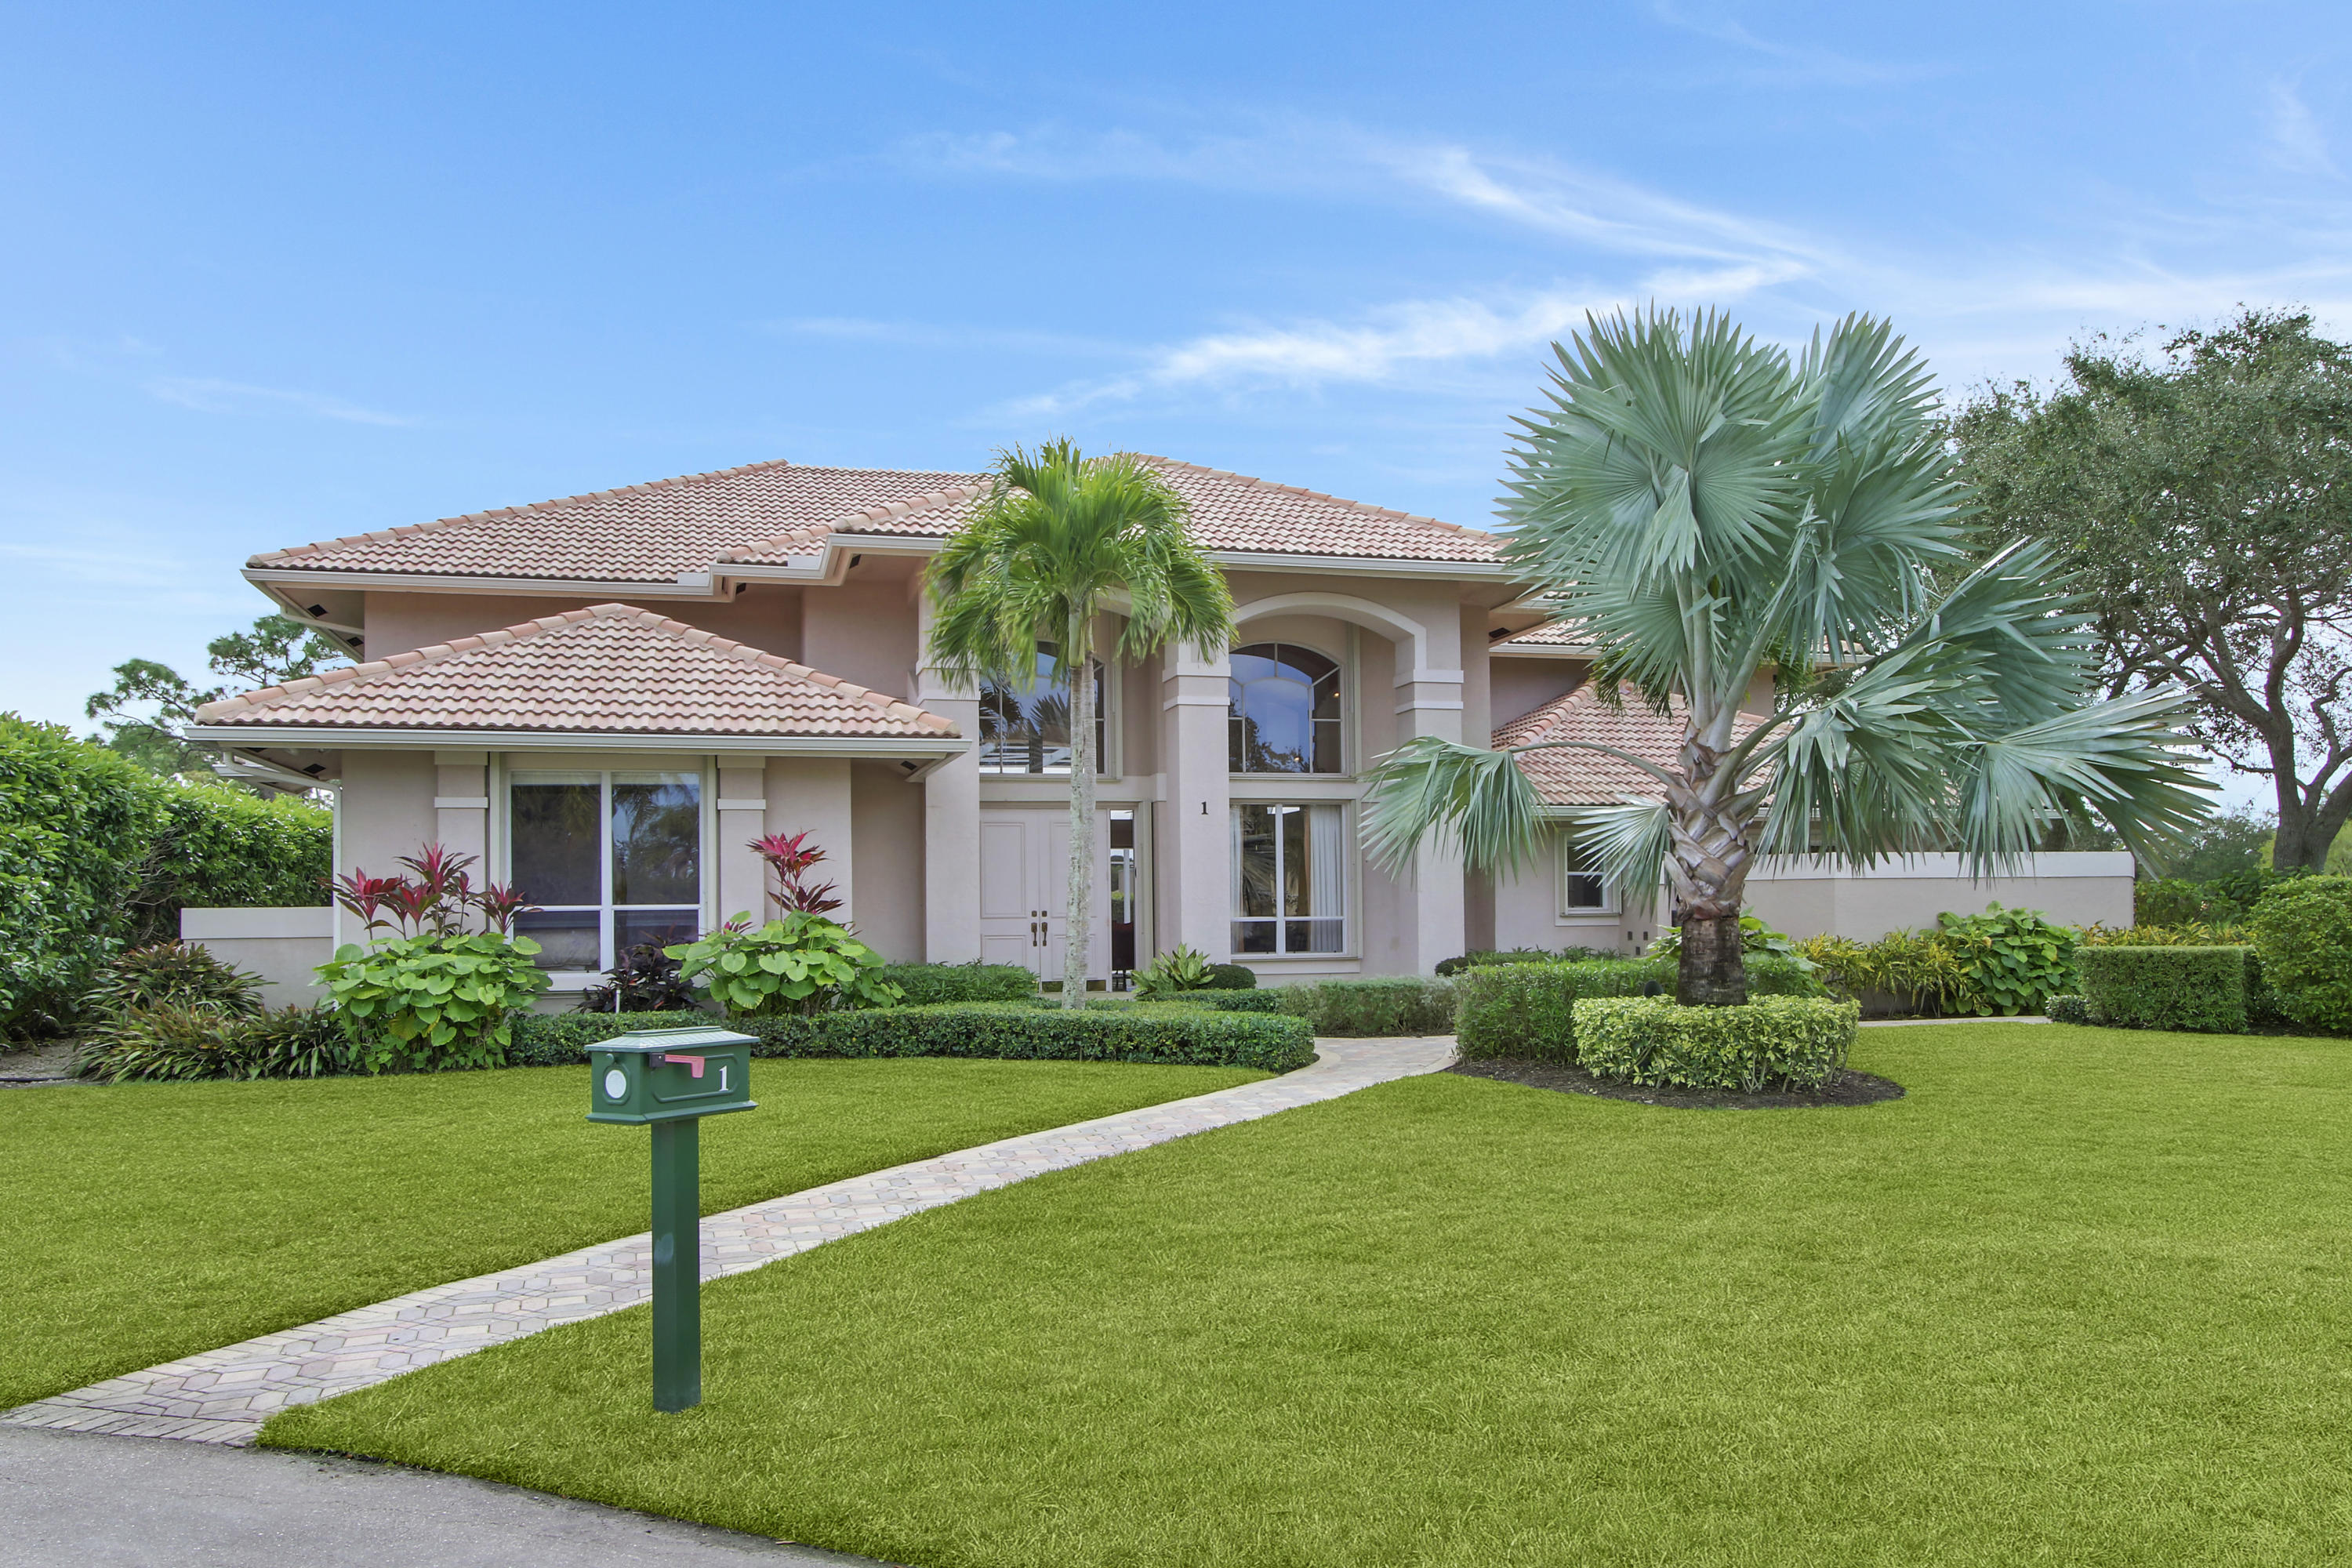 1 Sheldrake Circle, Palm Beach Gardens, Florida 33418, 5 Bedrooms Bedrooms, ,4.1 BathroomsBathrooms,A,Single family,Sheldrake,RX-10520379